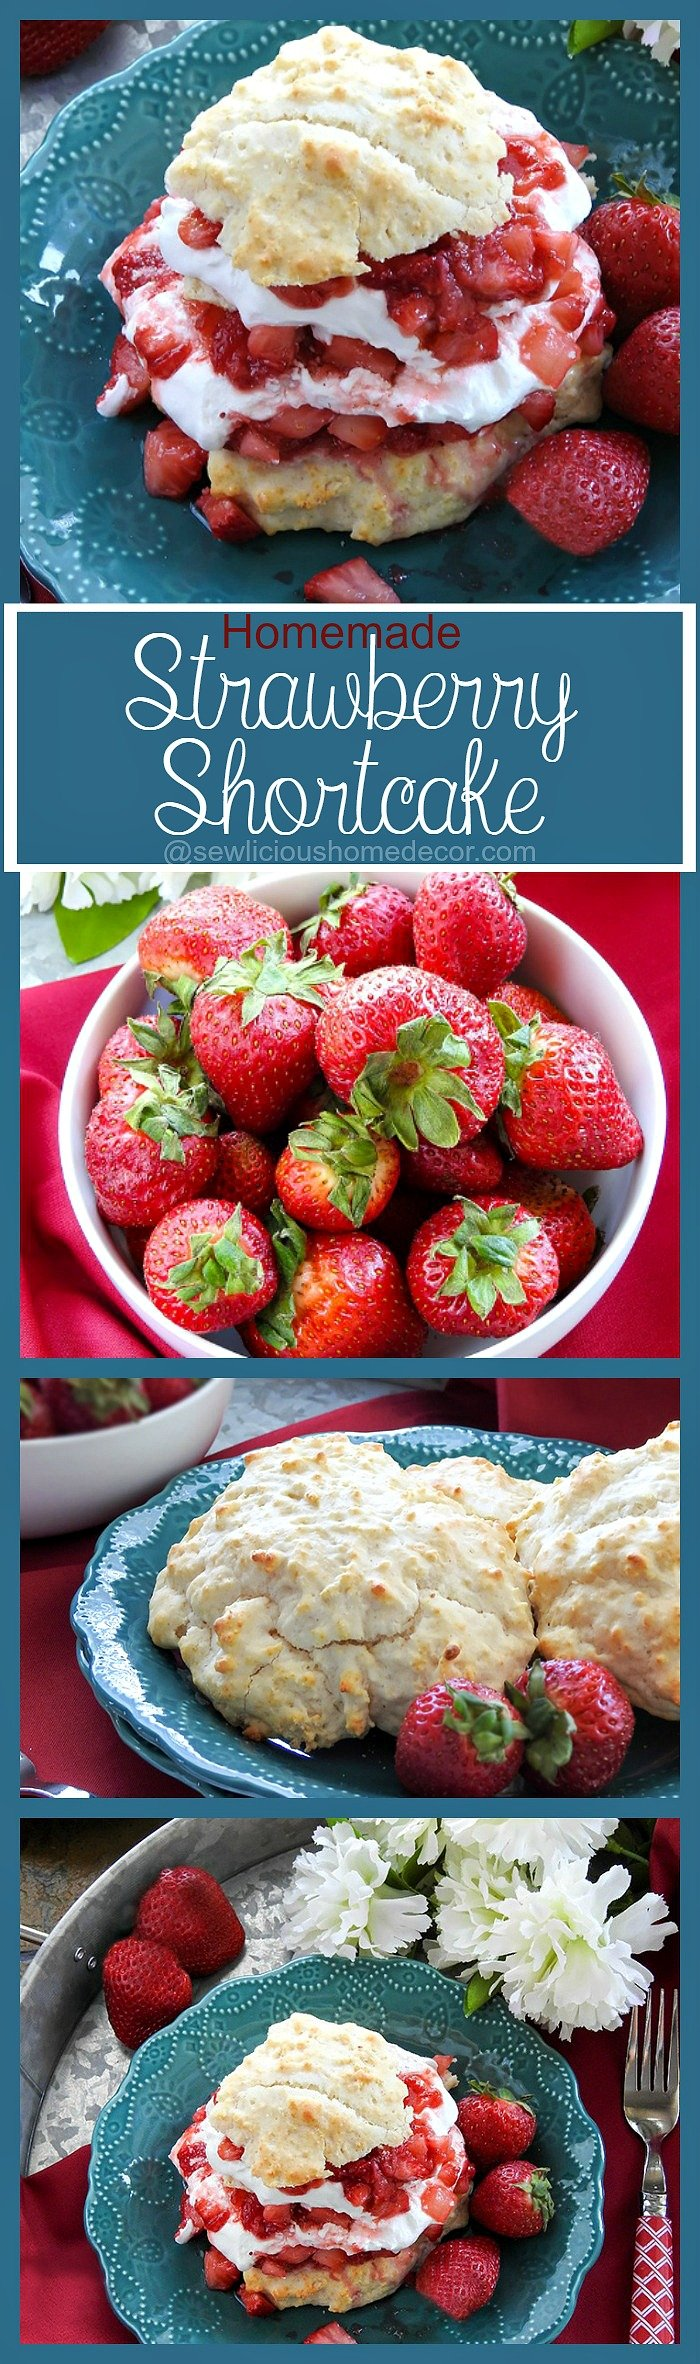 Homemade Strawberry Shortcakes with Cool Whip sewlicioushomedecor.com